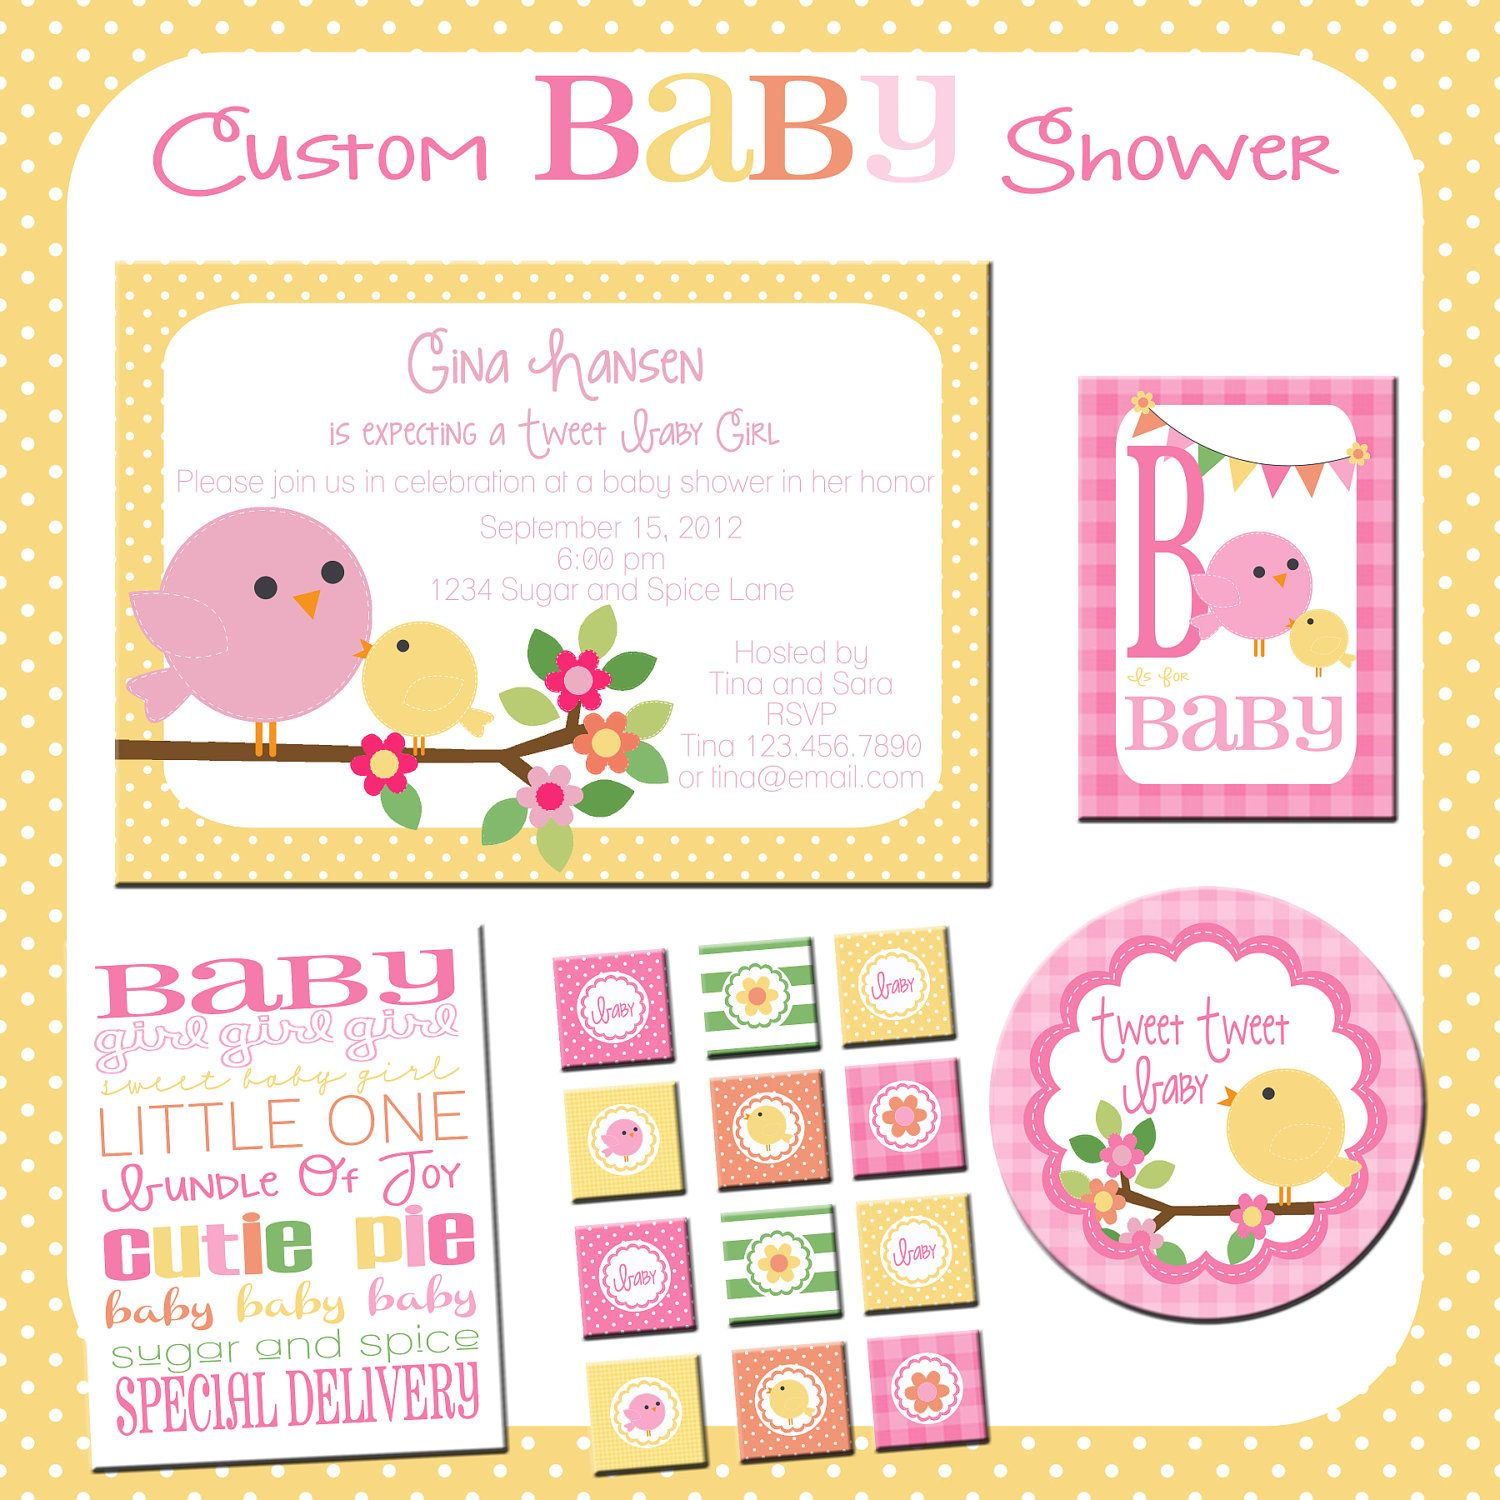 Baby Shower Printable Kit, Custom Birdie Baby Shower Invitations and ...